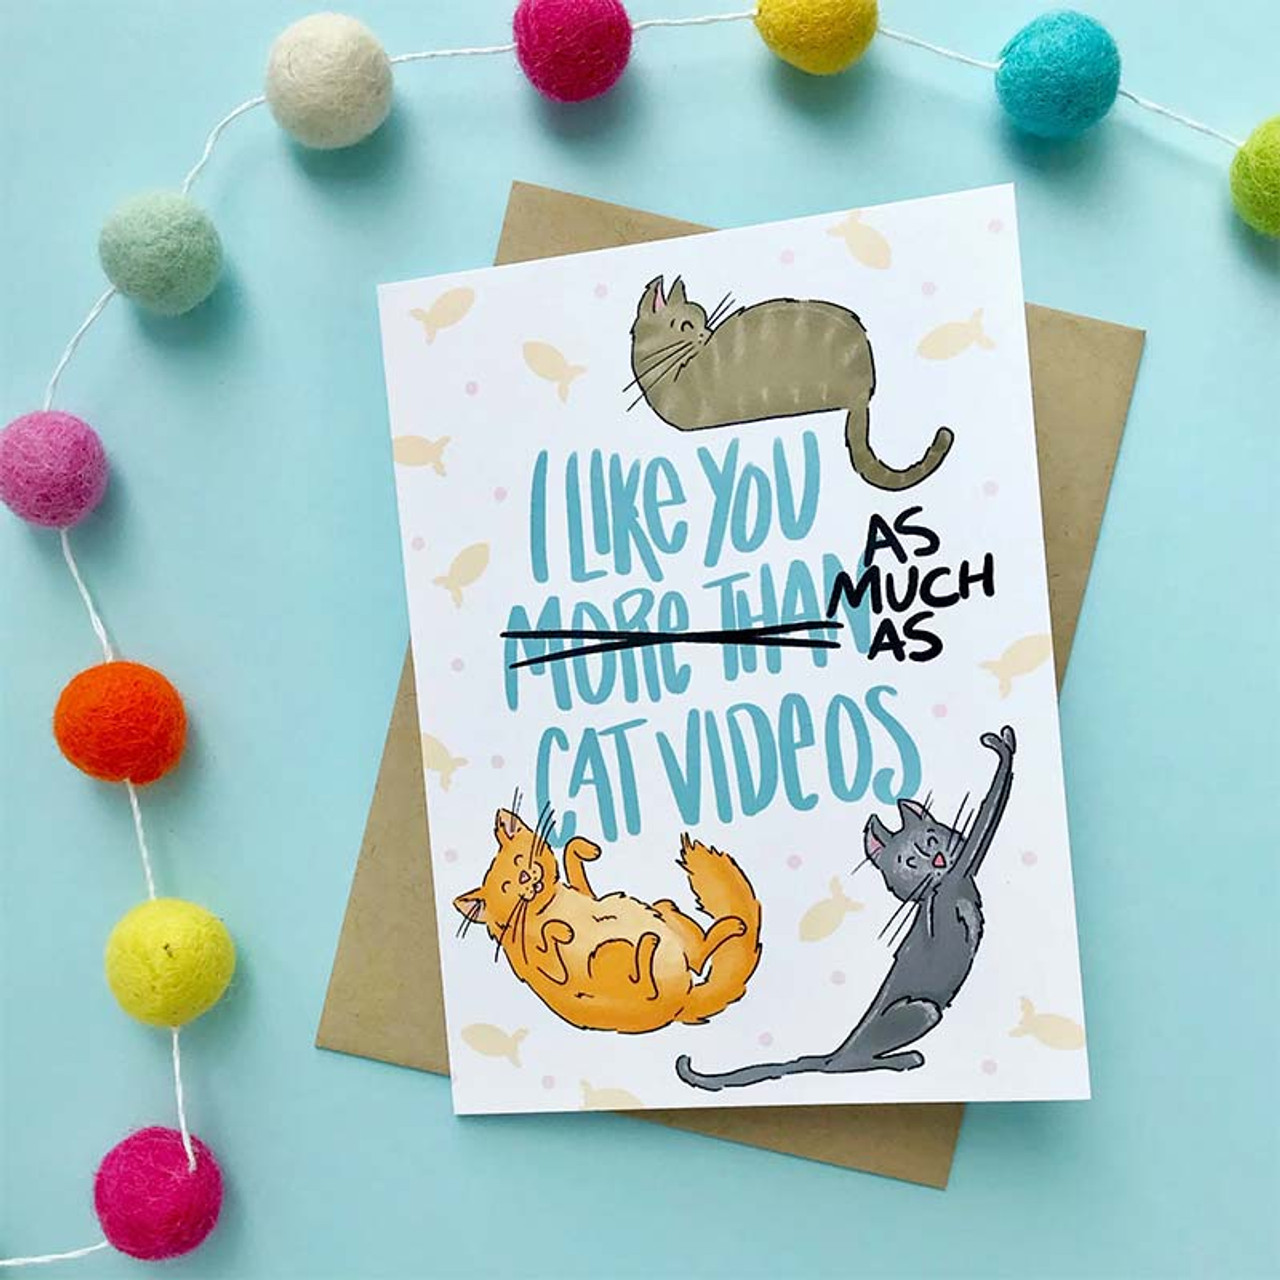 I Like You As Much Cat Videos Greeting Card - It's purr-fect!